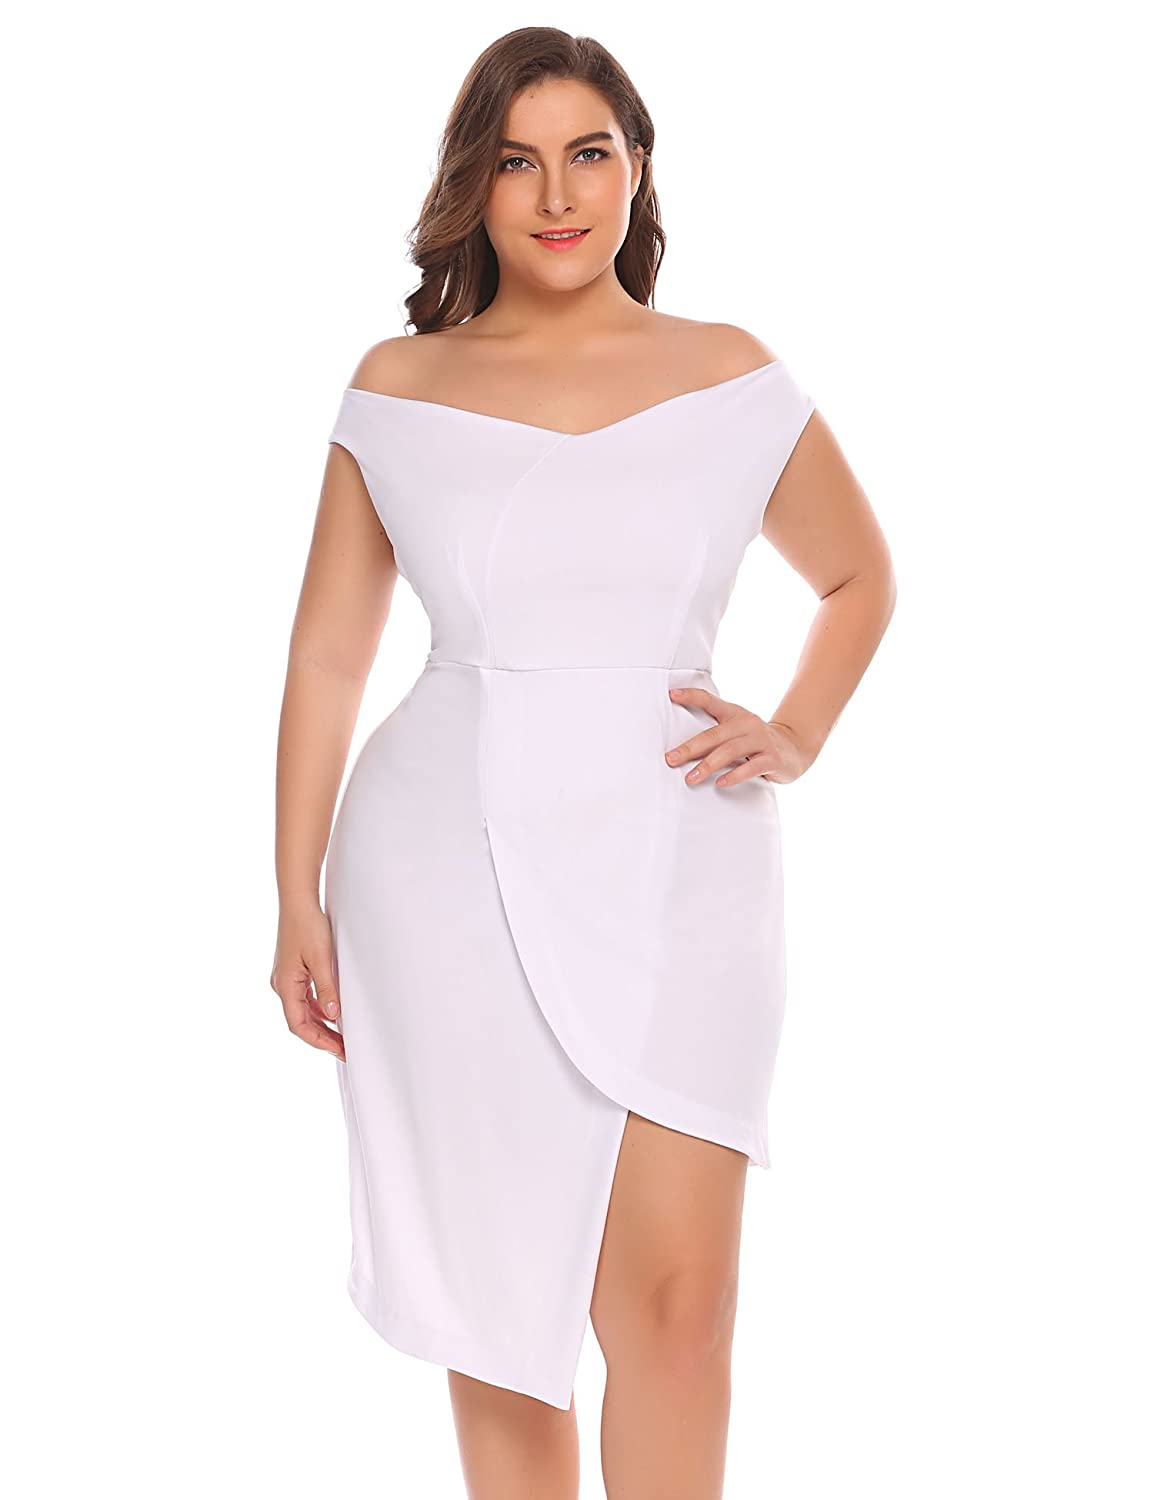 647c9d29ee Zeagoo Womens Plus Size Off Shoulder Asymmetrical Elegant Strapless Party  Cocktail Dress at Amazon Women's Clothing store: